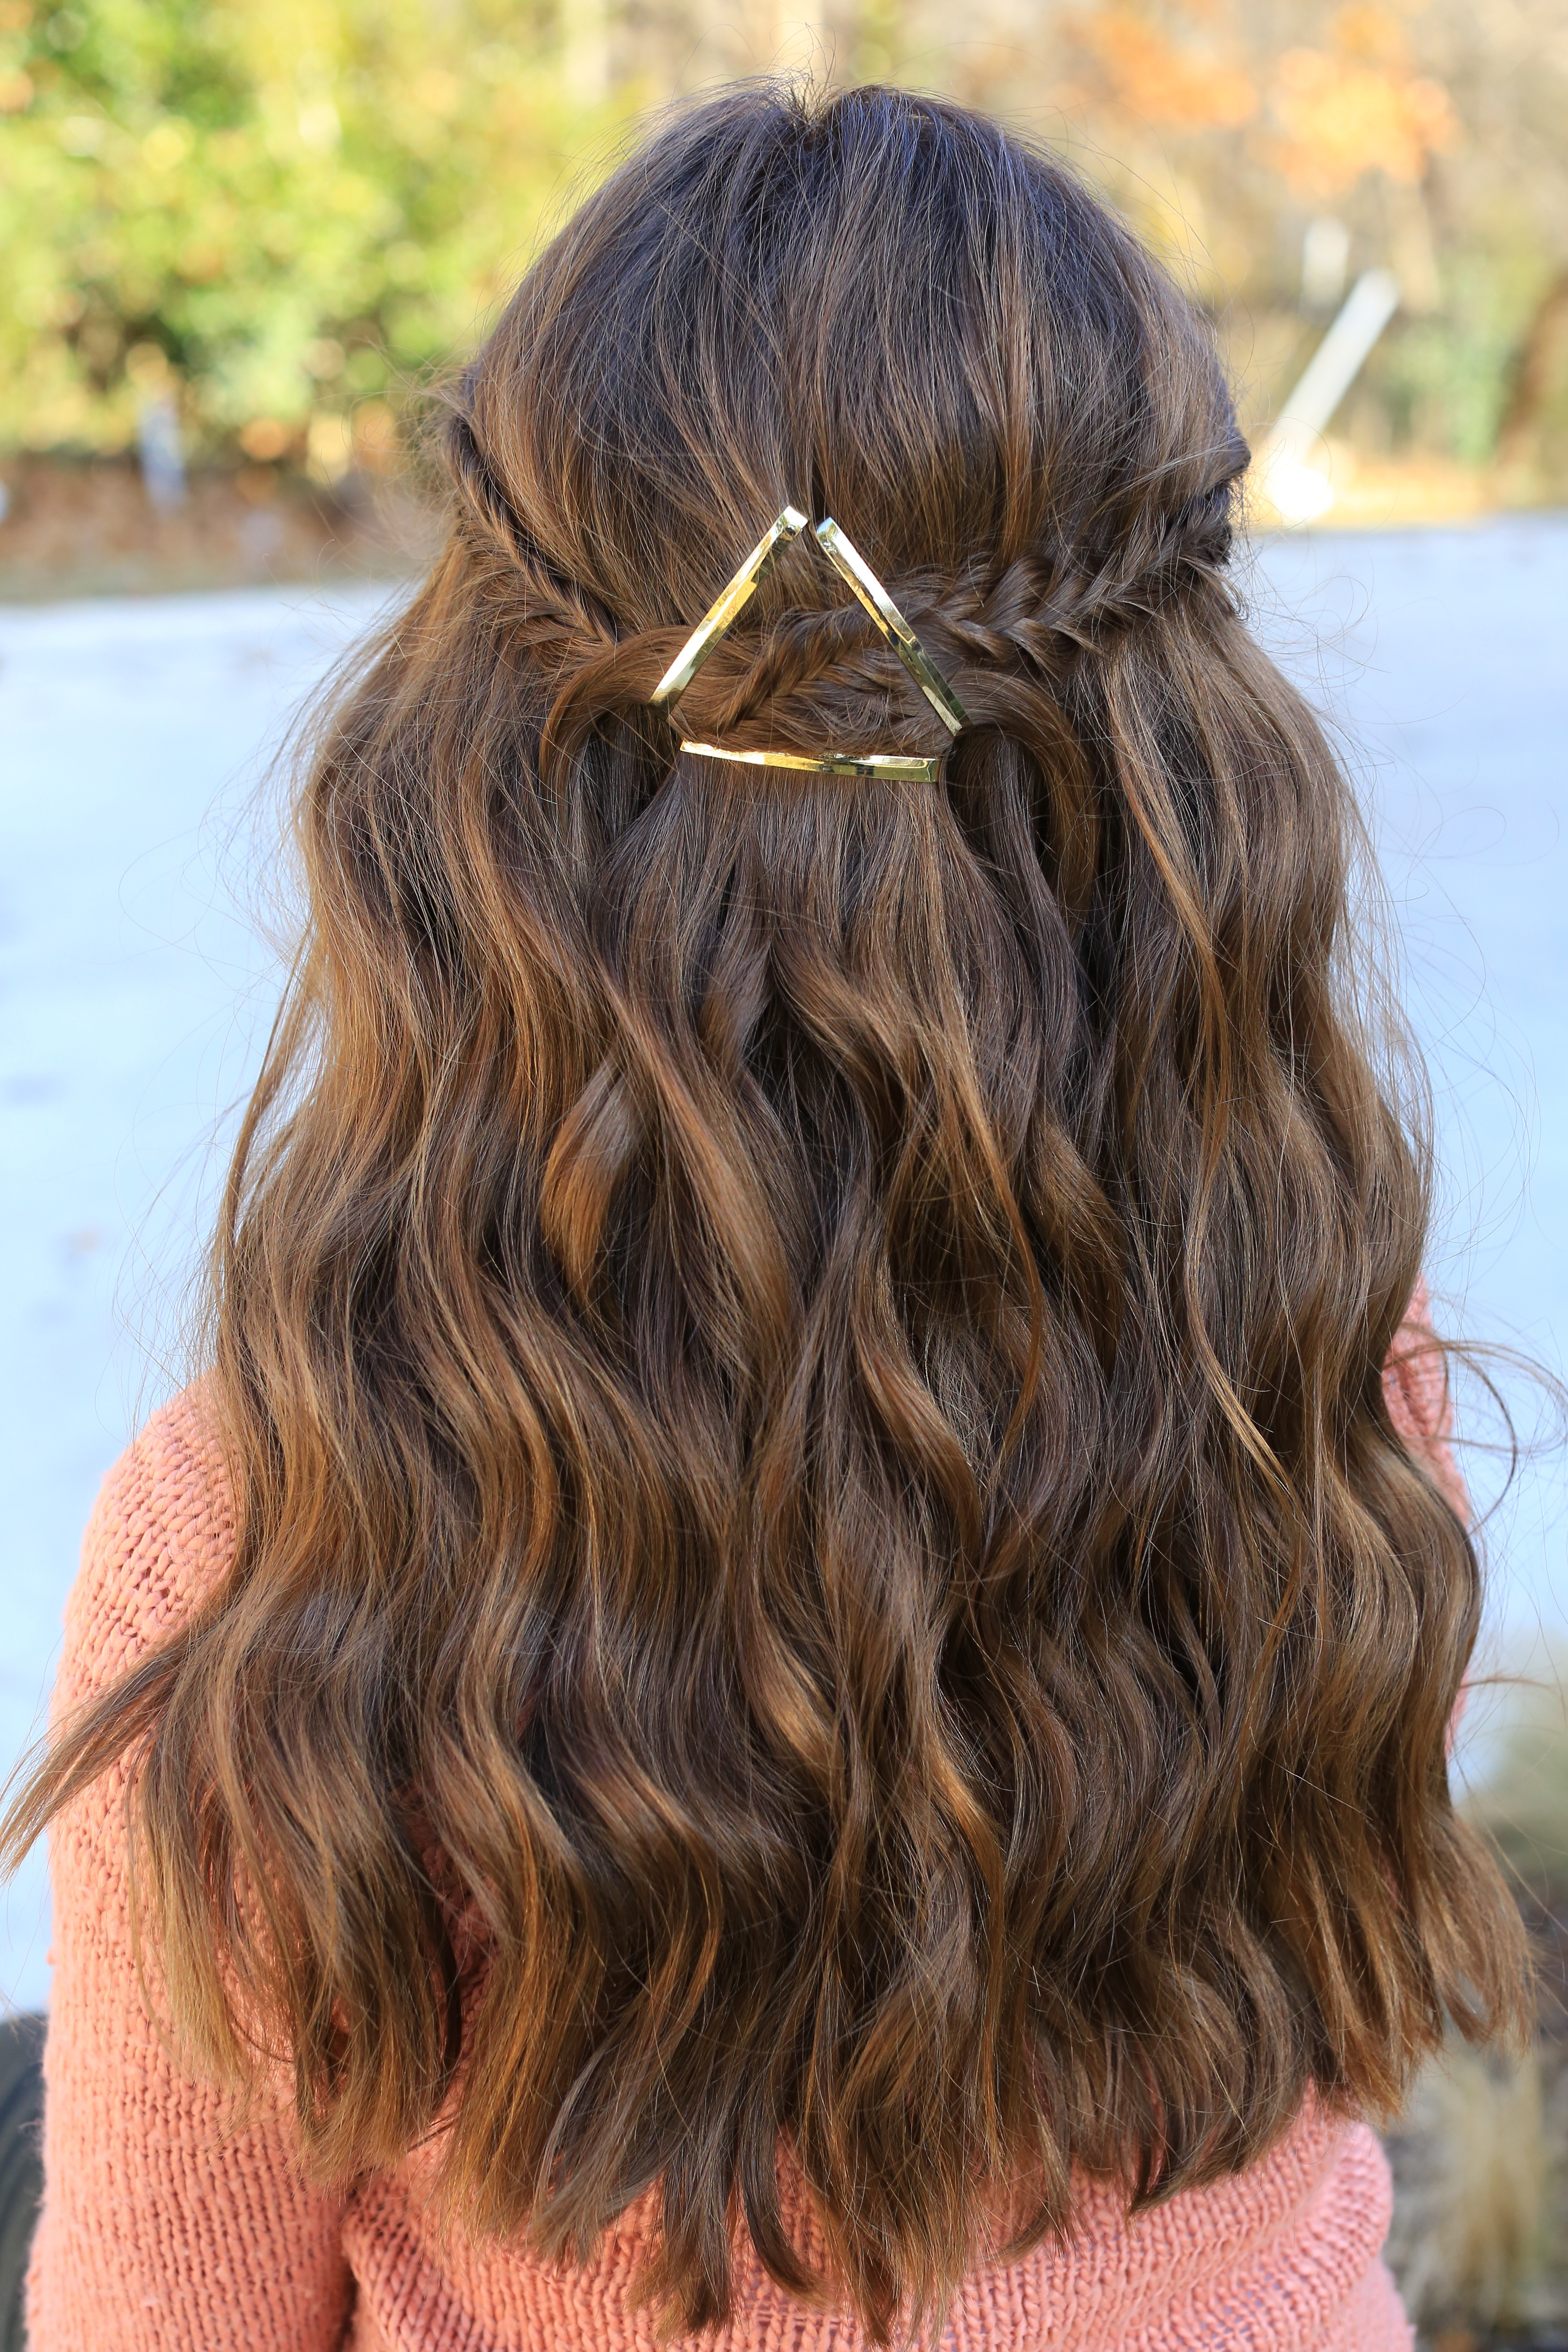 Best ideas about Cute Hairstyles . Save or Pin Barrette Tieback Now.